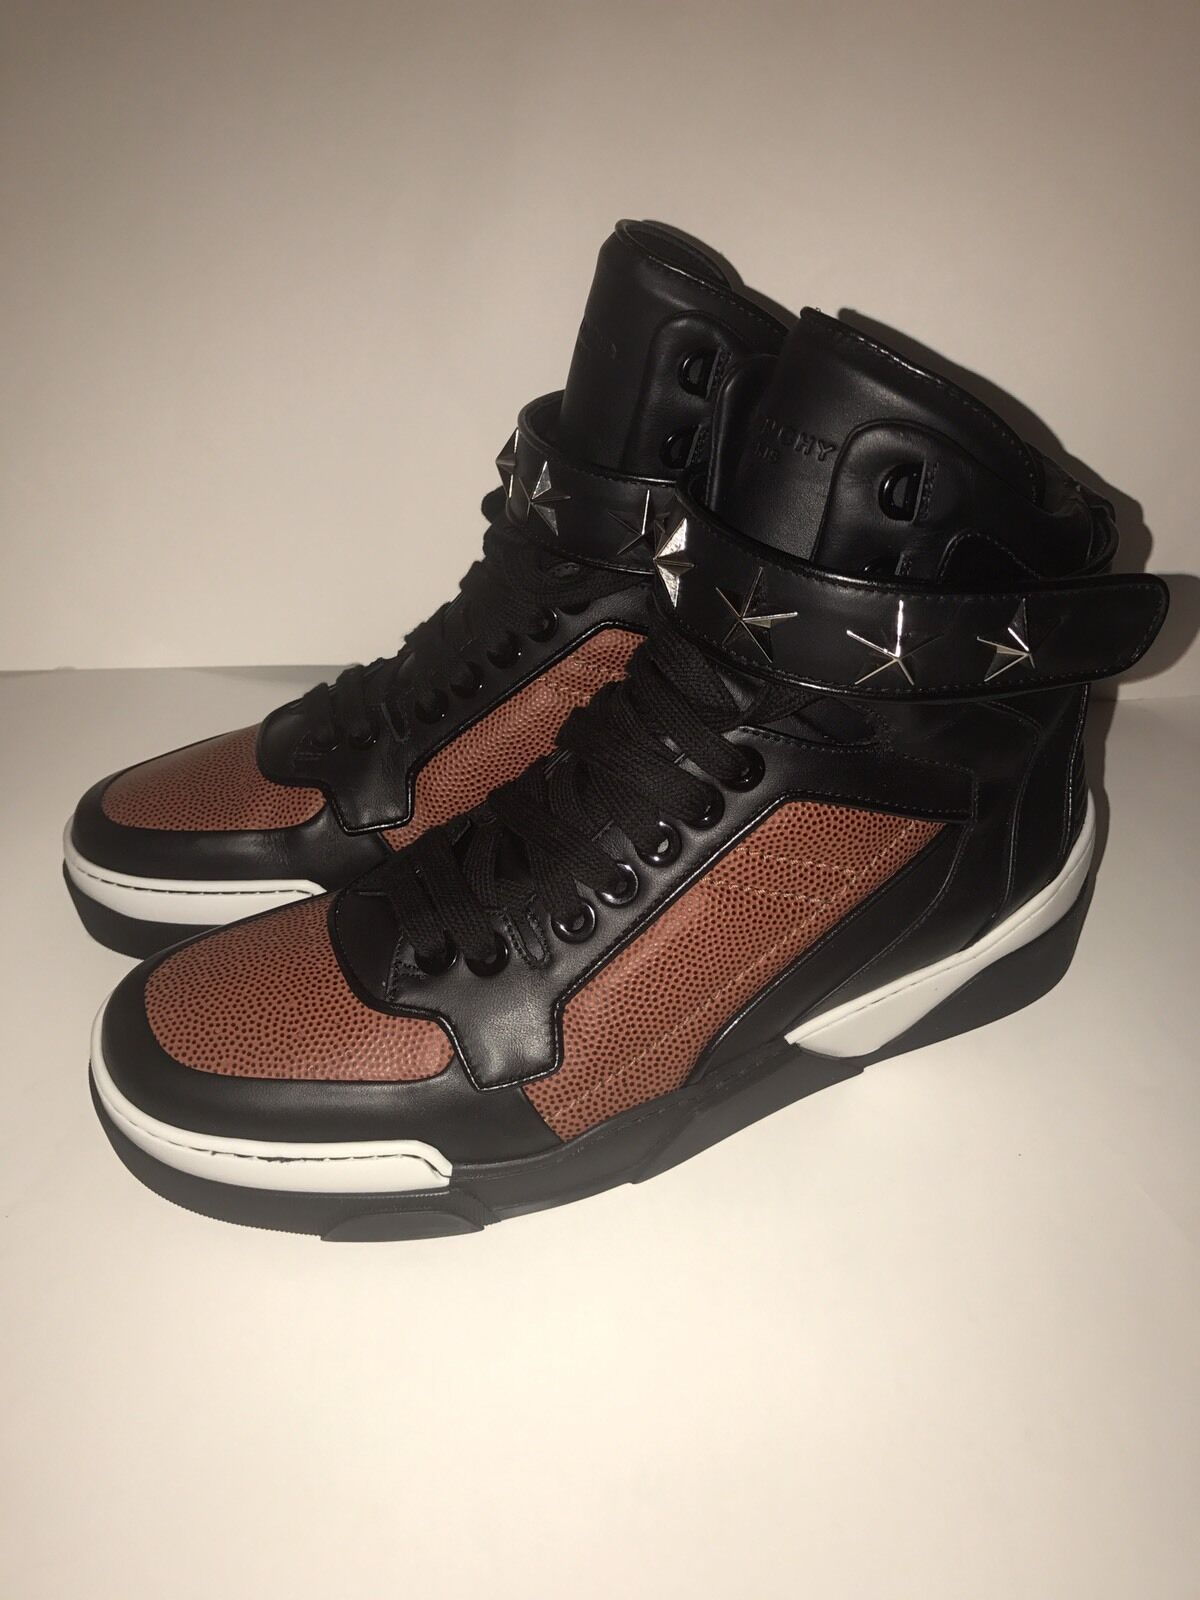 New Men's Givenchy Tyson Sneakers, Basketball Edition, Size EU44, 11 US,